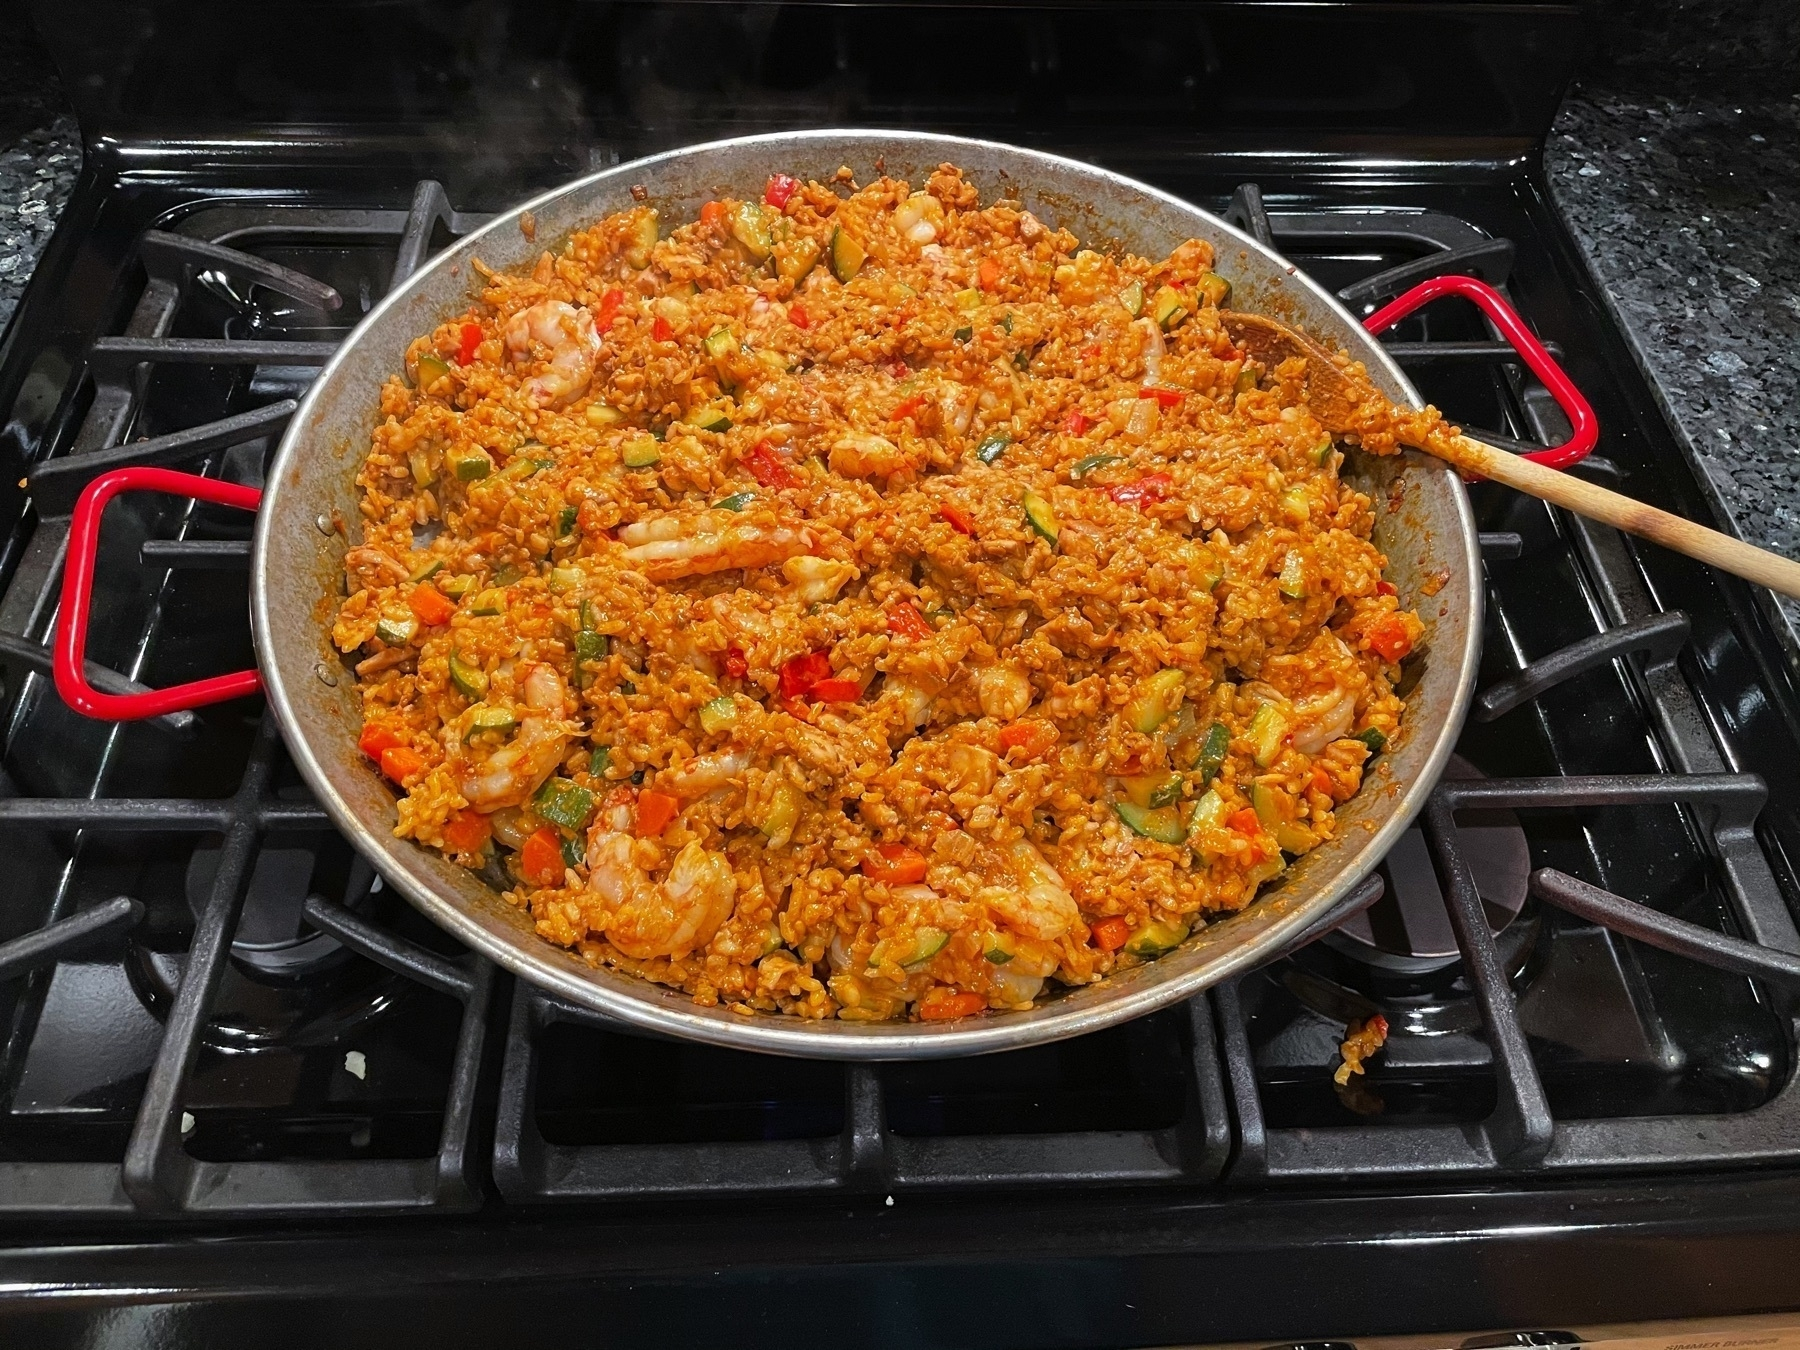 Fully cooked paella in paella pan.